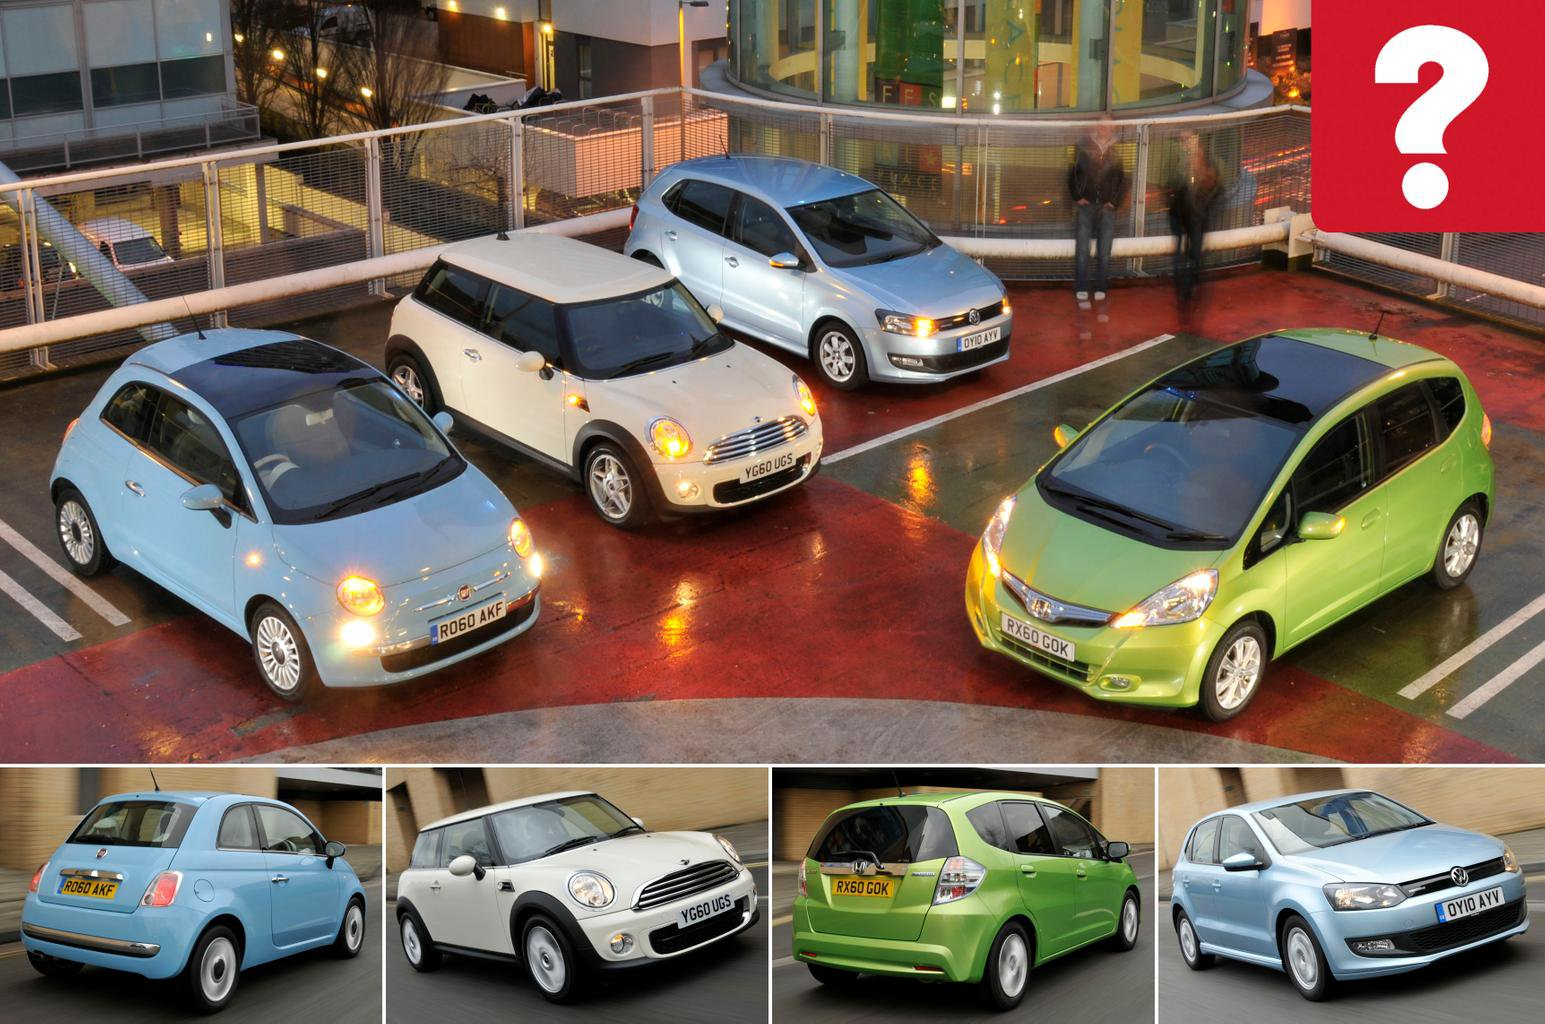 Used Fiat 500 vs Honda Jazz vs Mini One vs Volkswagen Polo